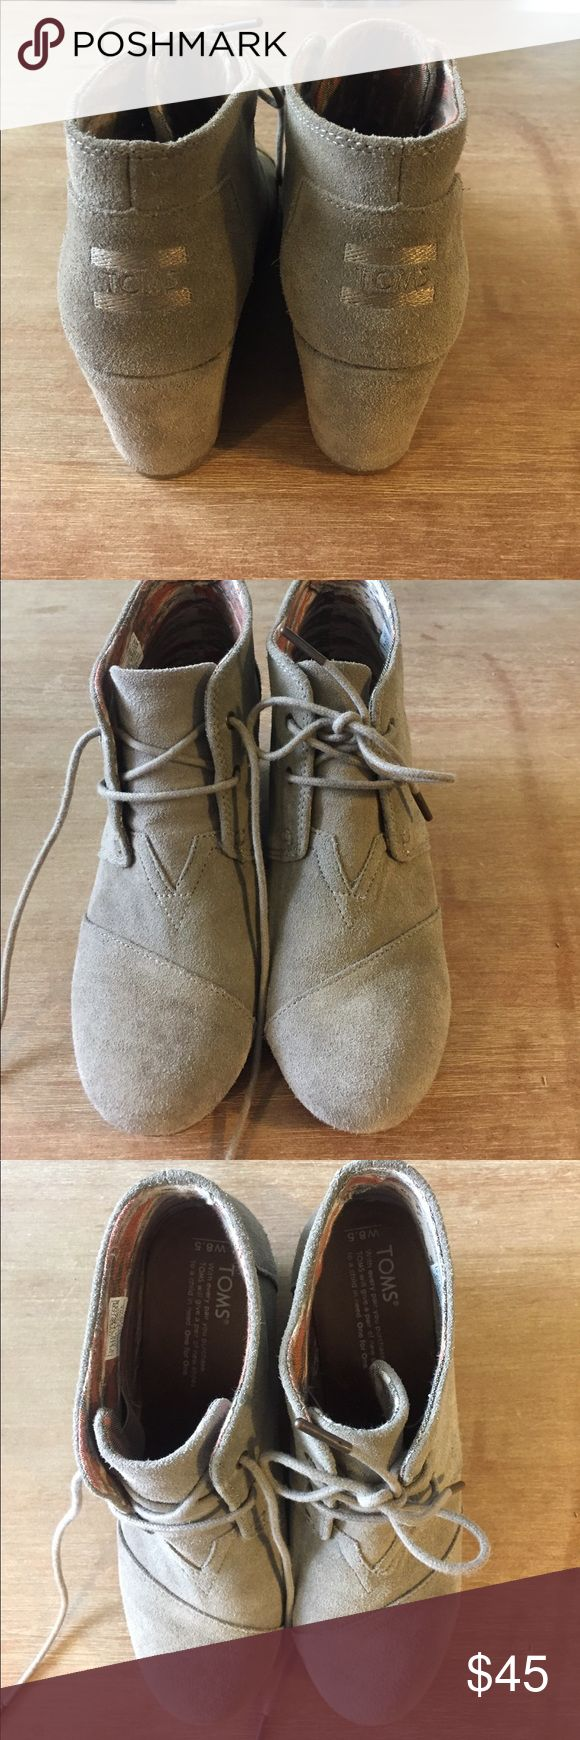 Women's TOMS wedges size 8.5 suede leather nice! Women's TOMS light suede leather wedges size 8.5 great condition TOMS Shoes Ankle Boots & Booties